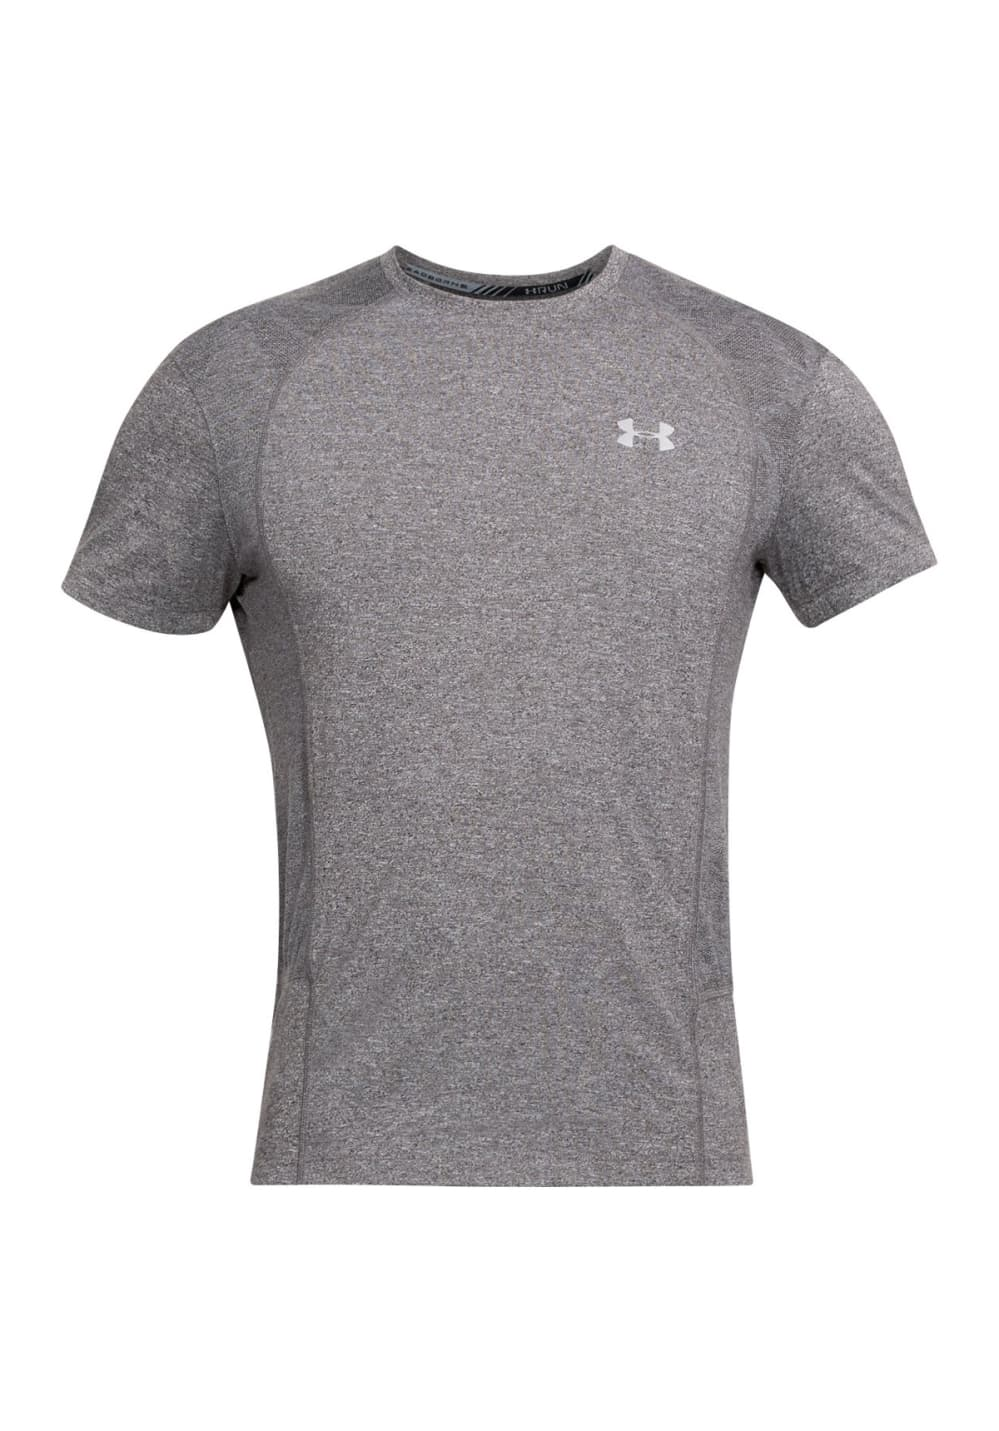 under armour threadborne swyft short sleeve tee laufshirts f r herren grau 21run. Black Bedroom Furniture Sets. Home Design Ideas